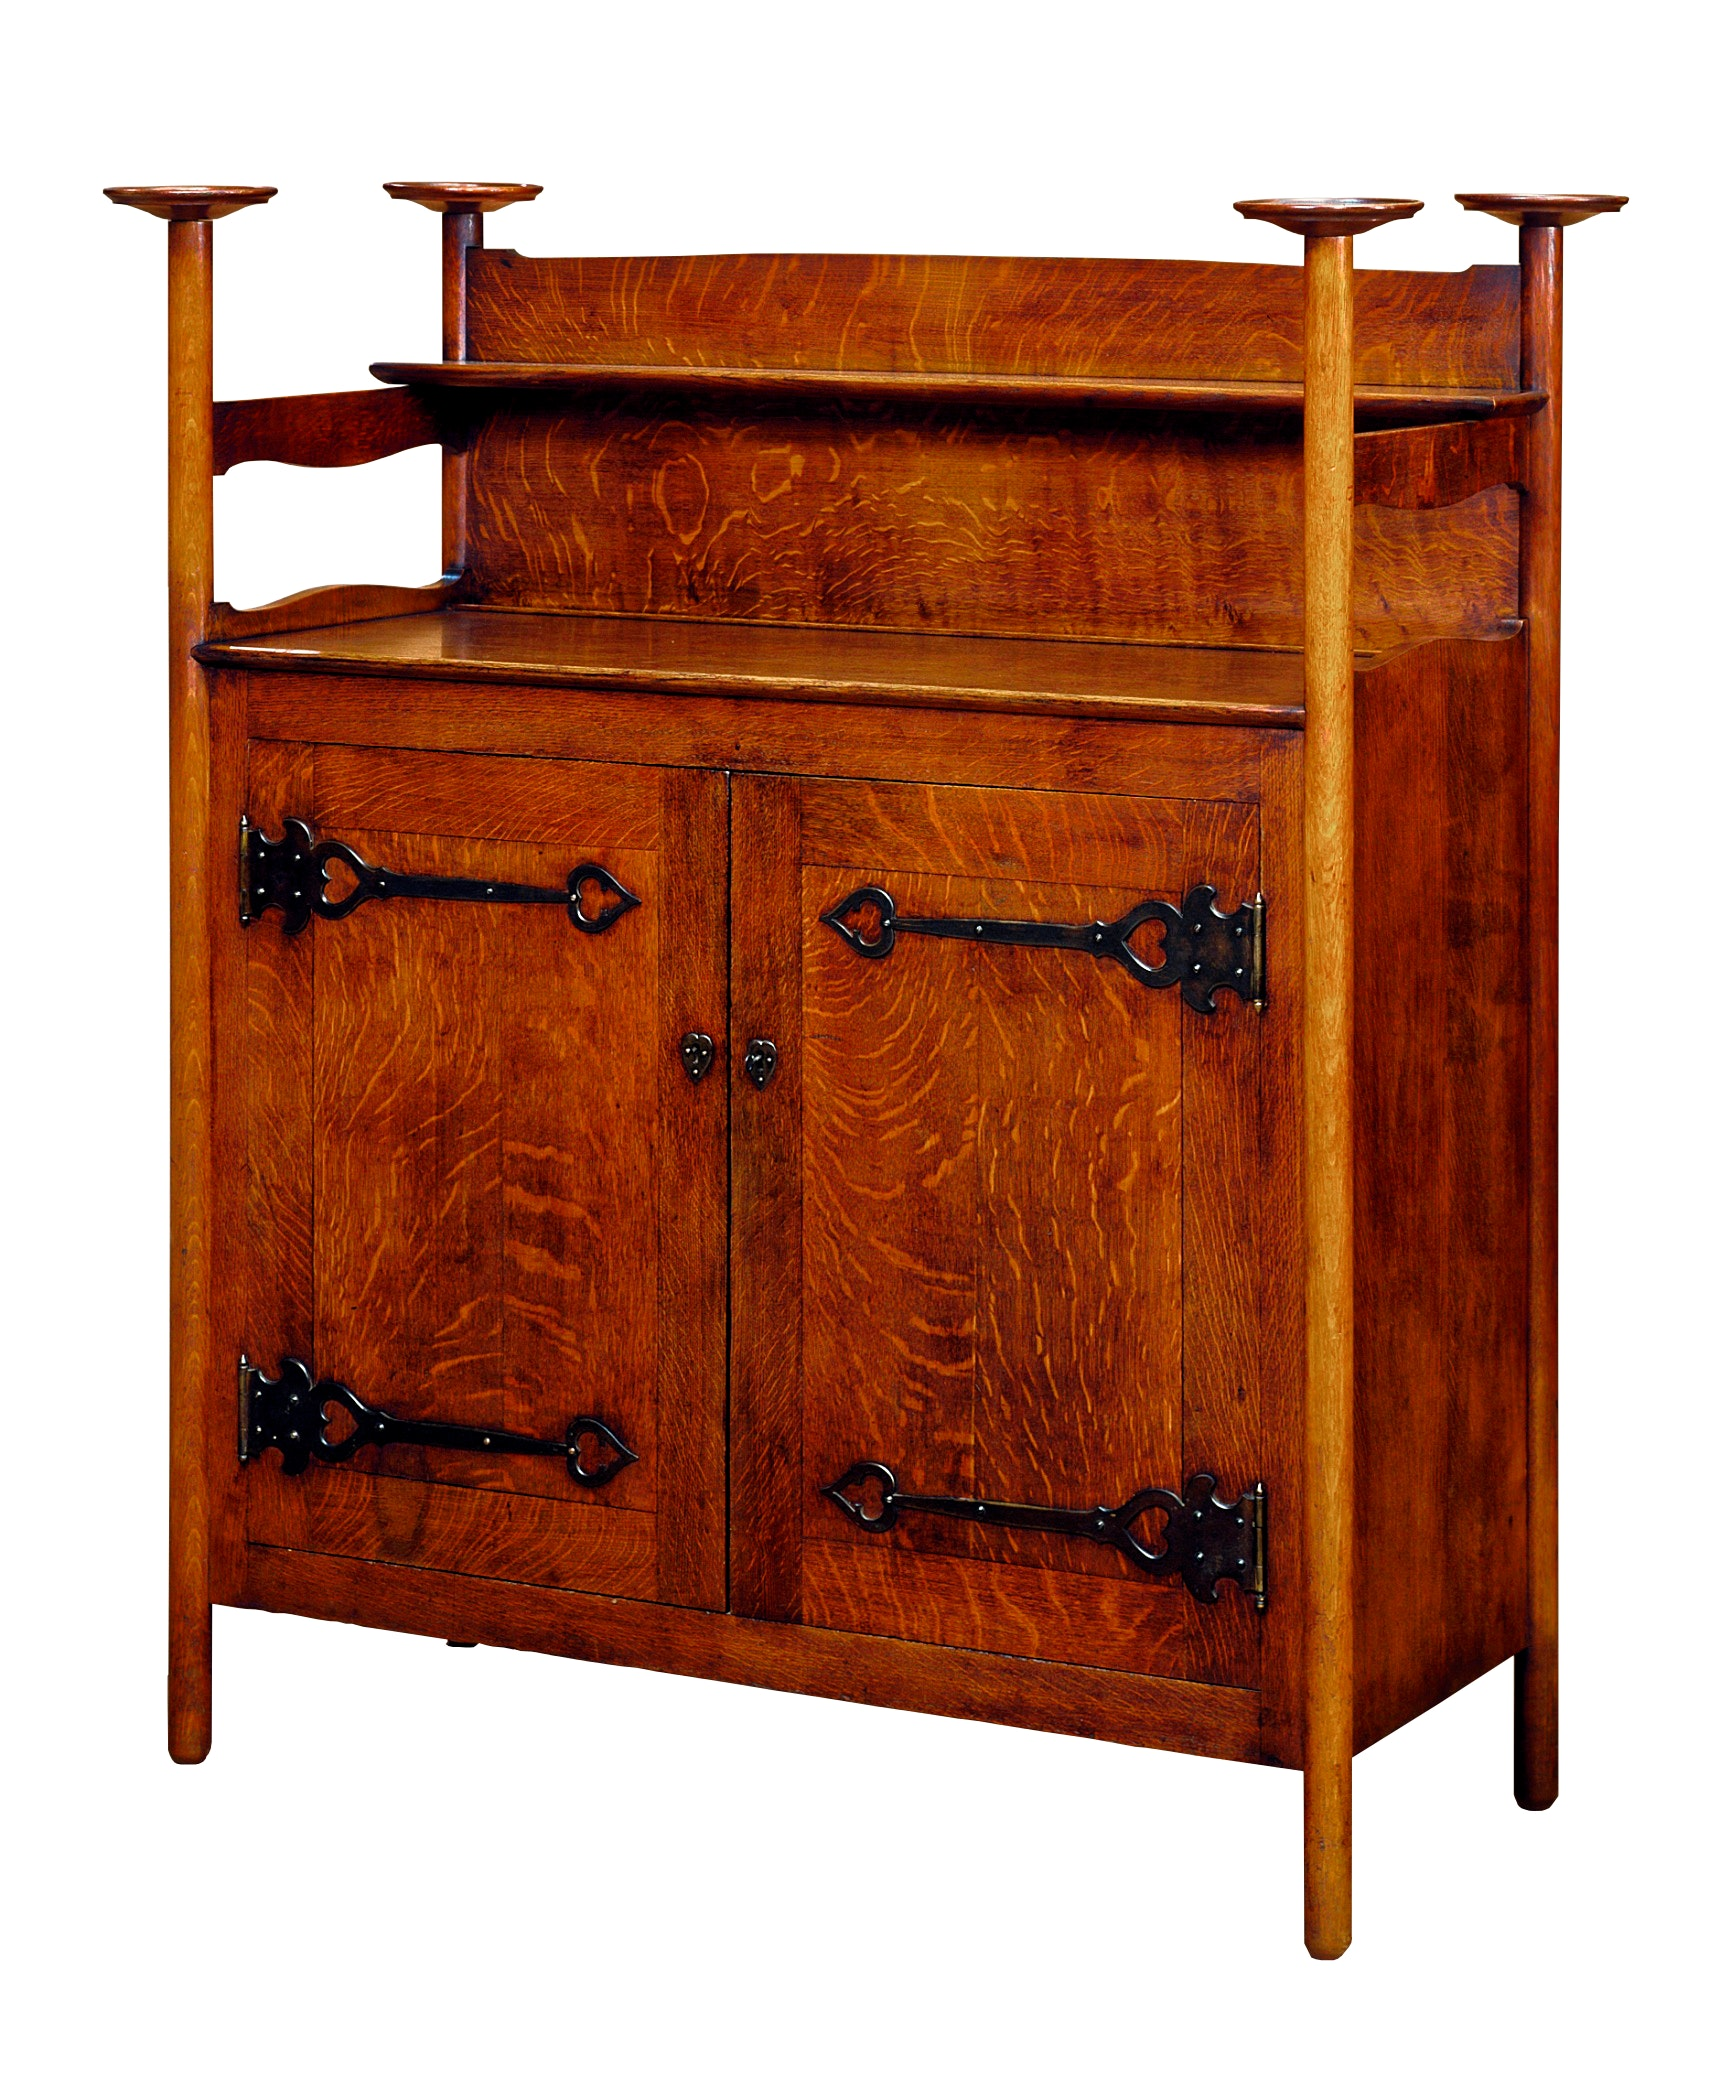 dufrane moving & storage: moving antique furniture or heavy items